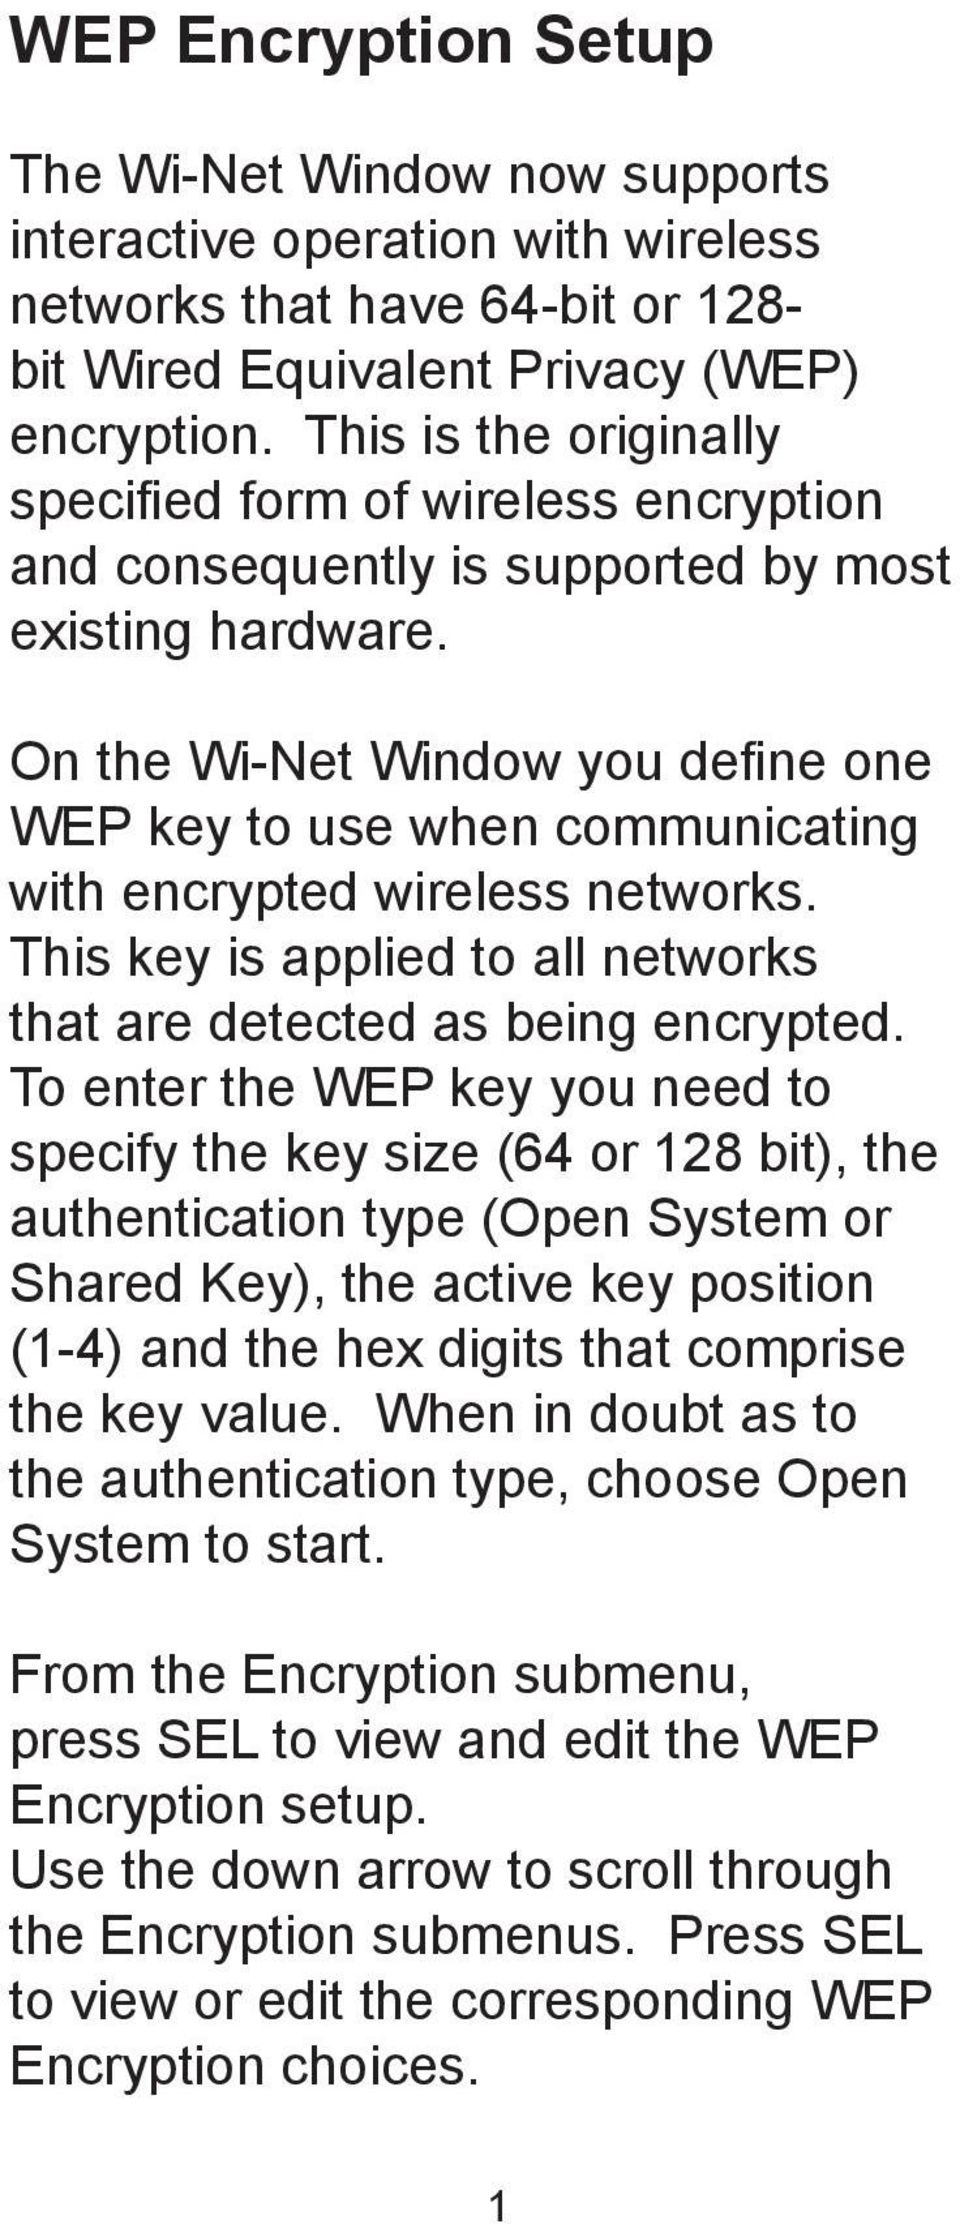 On the Wi-Net Window you define one WEP key to use when communicating with encrypted wireless networks. This key is applied to all networks that are detected as being encrypted.